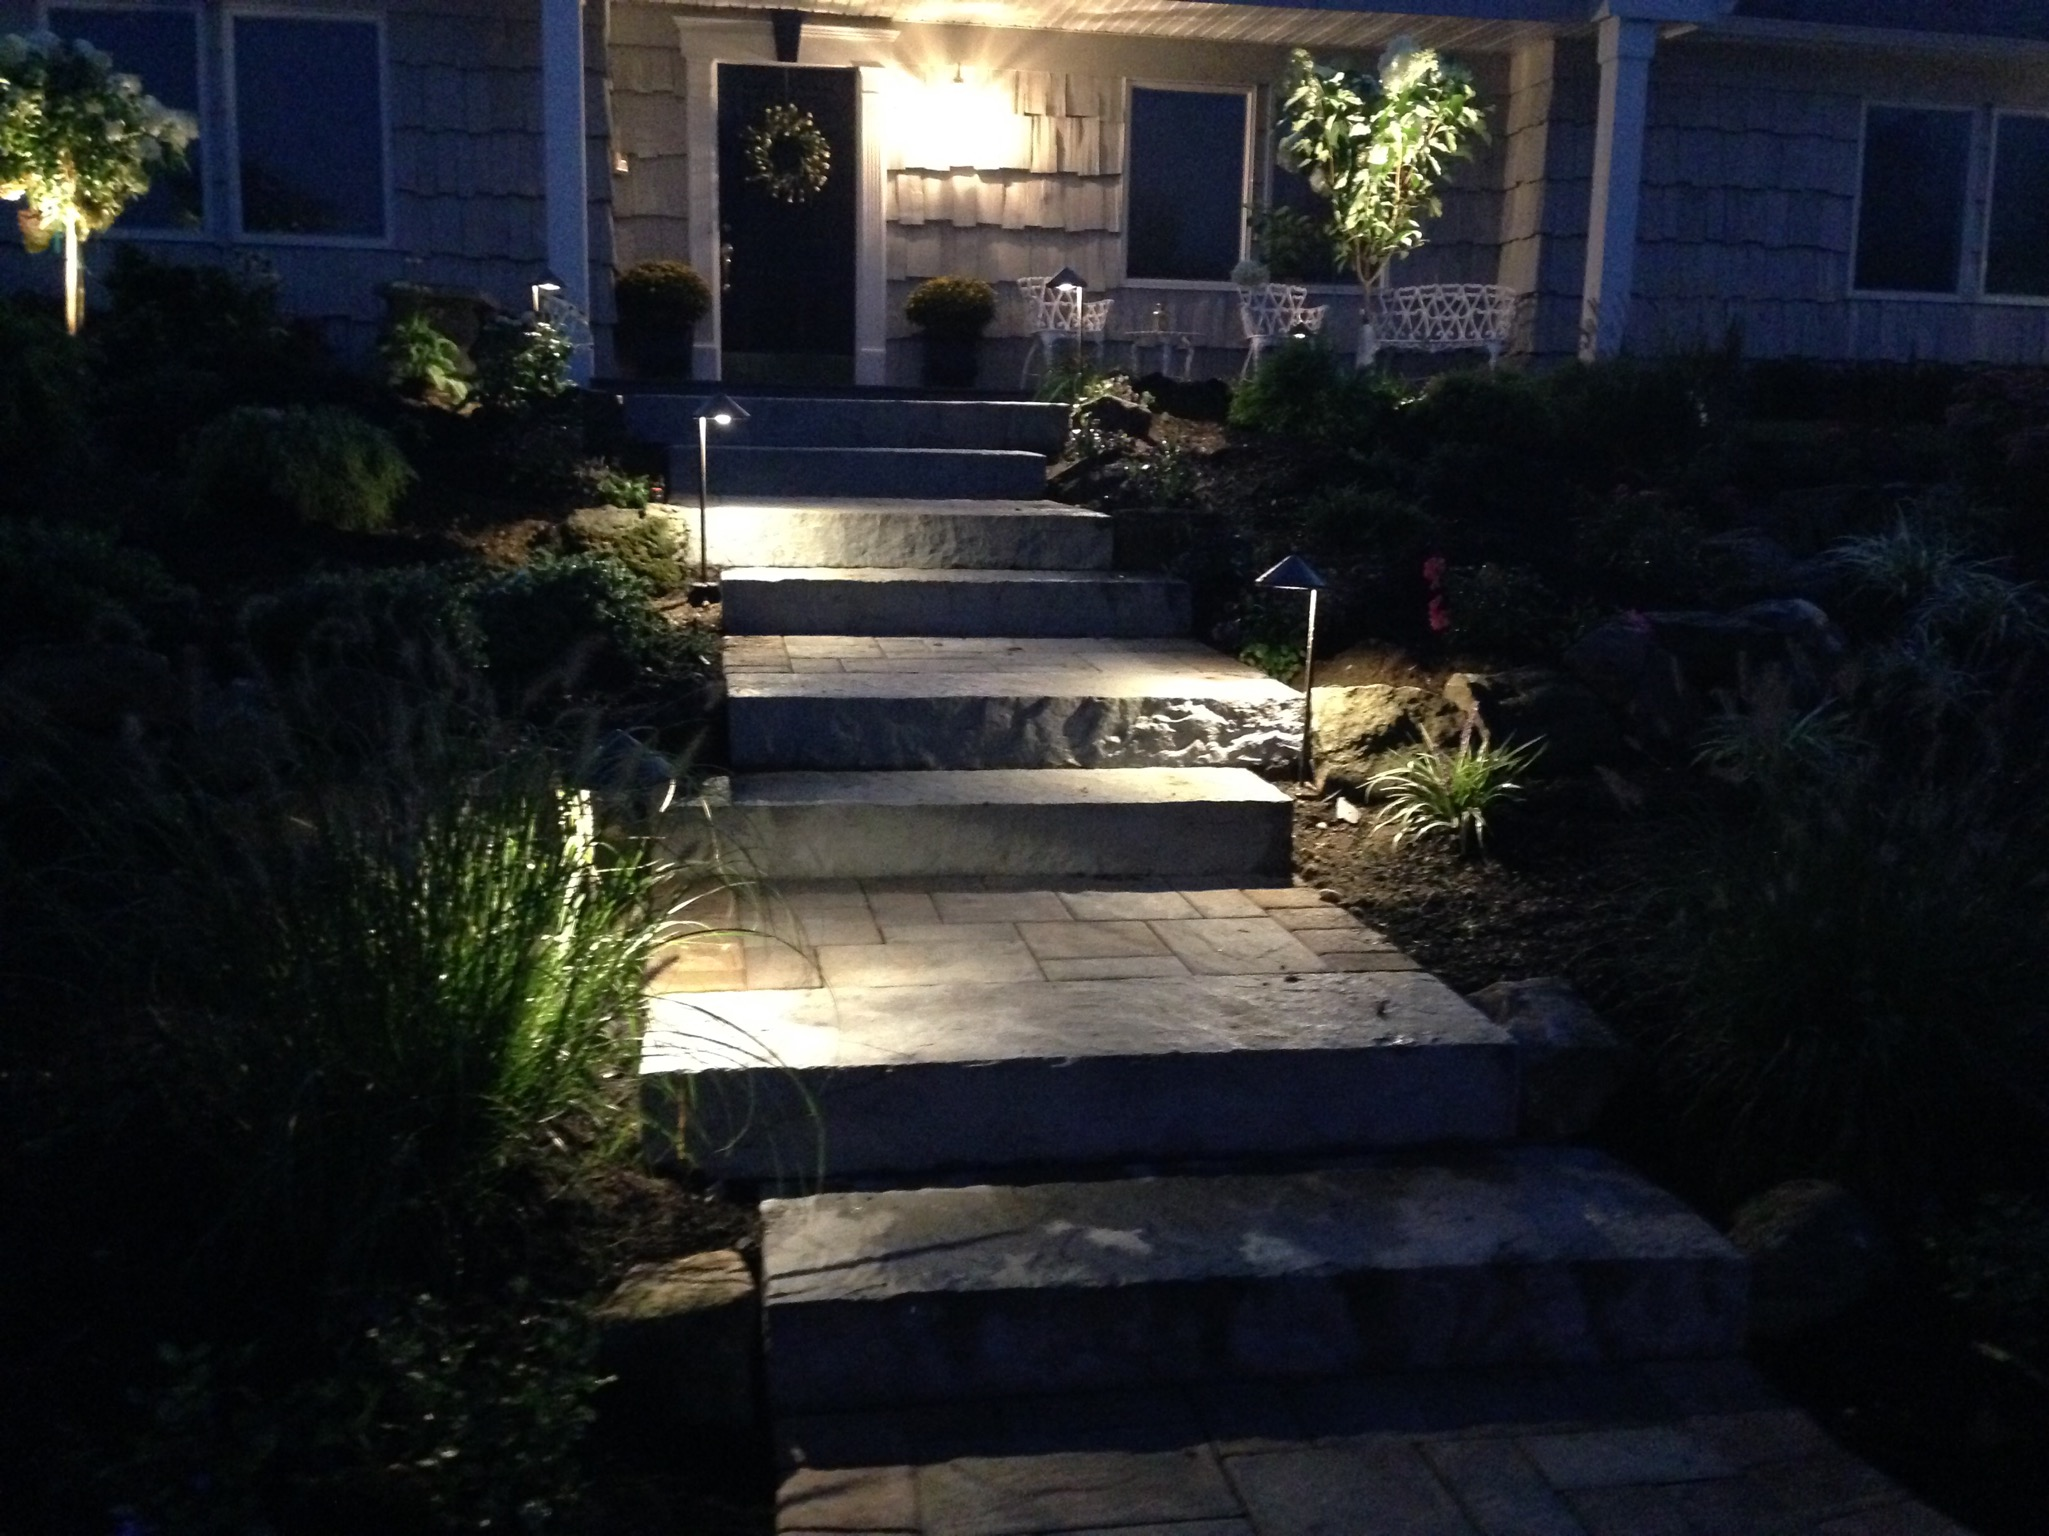 Smithtown, NY landscape lighting at a front entrance and steps